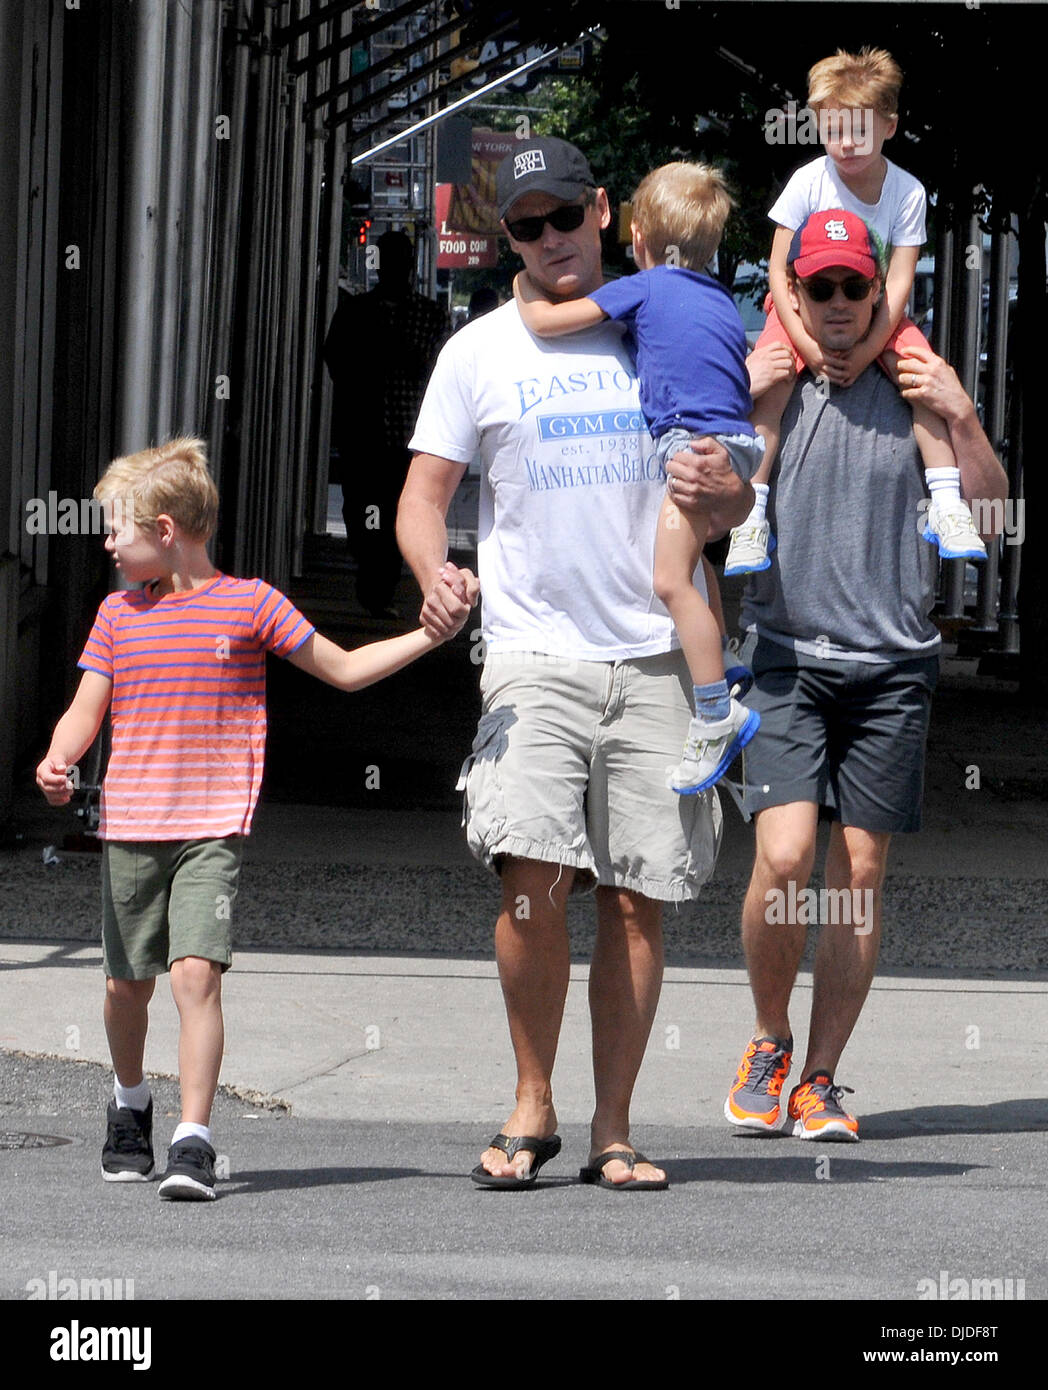 Simon Halls, Matt Bomer and sons Kit, Walker and Henry Matt Bomer and partner out and about with their three sons Where: New York City, United States When: 02 Aug 2012 Stock Photo